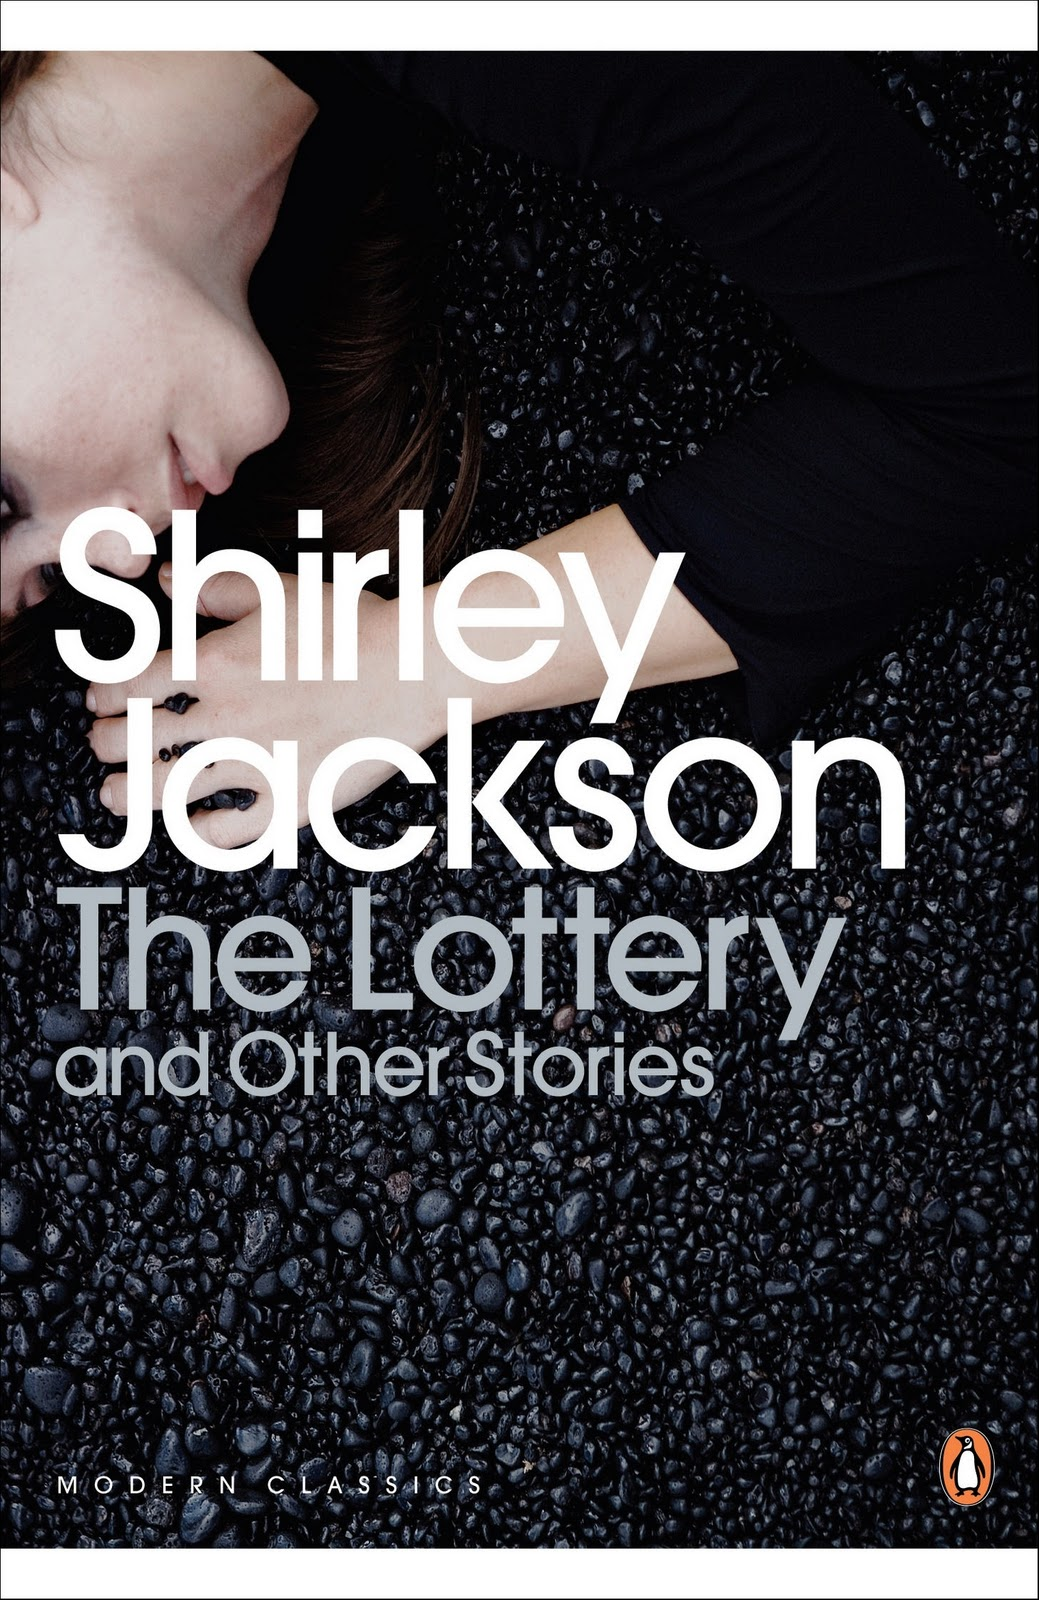 essay on short story the lottery English short story the lottery the lottery tessie was still protesting about time and redoing the lottery when the first stone hit her in the.